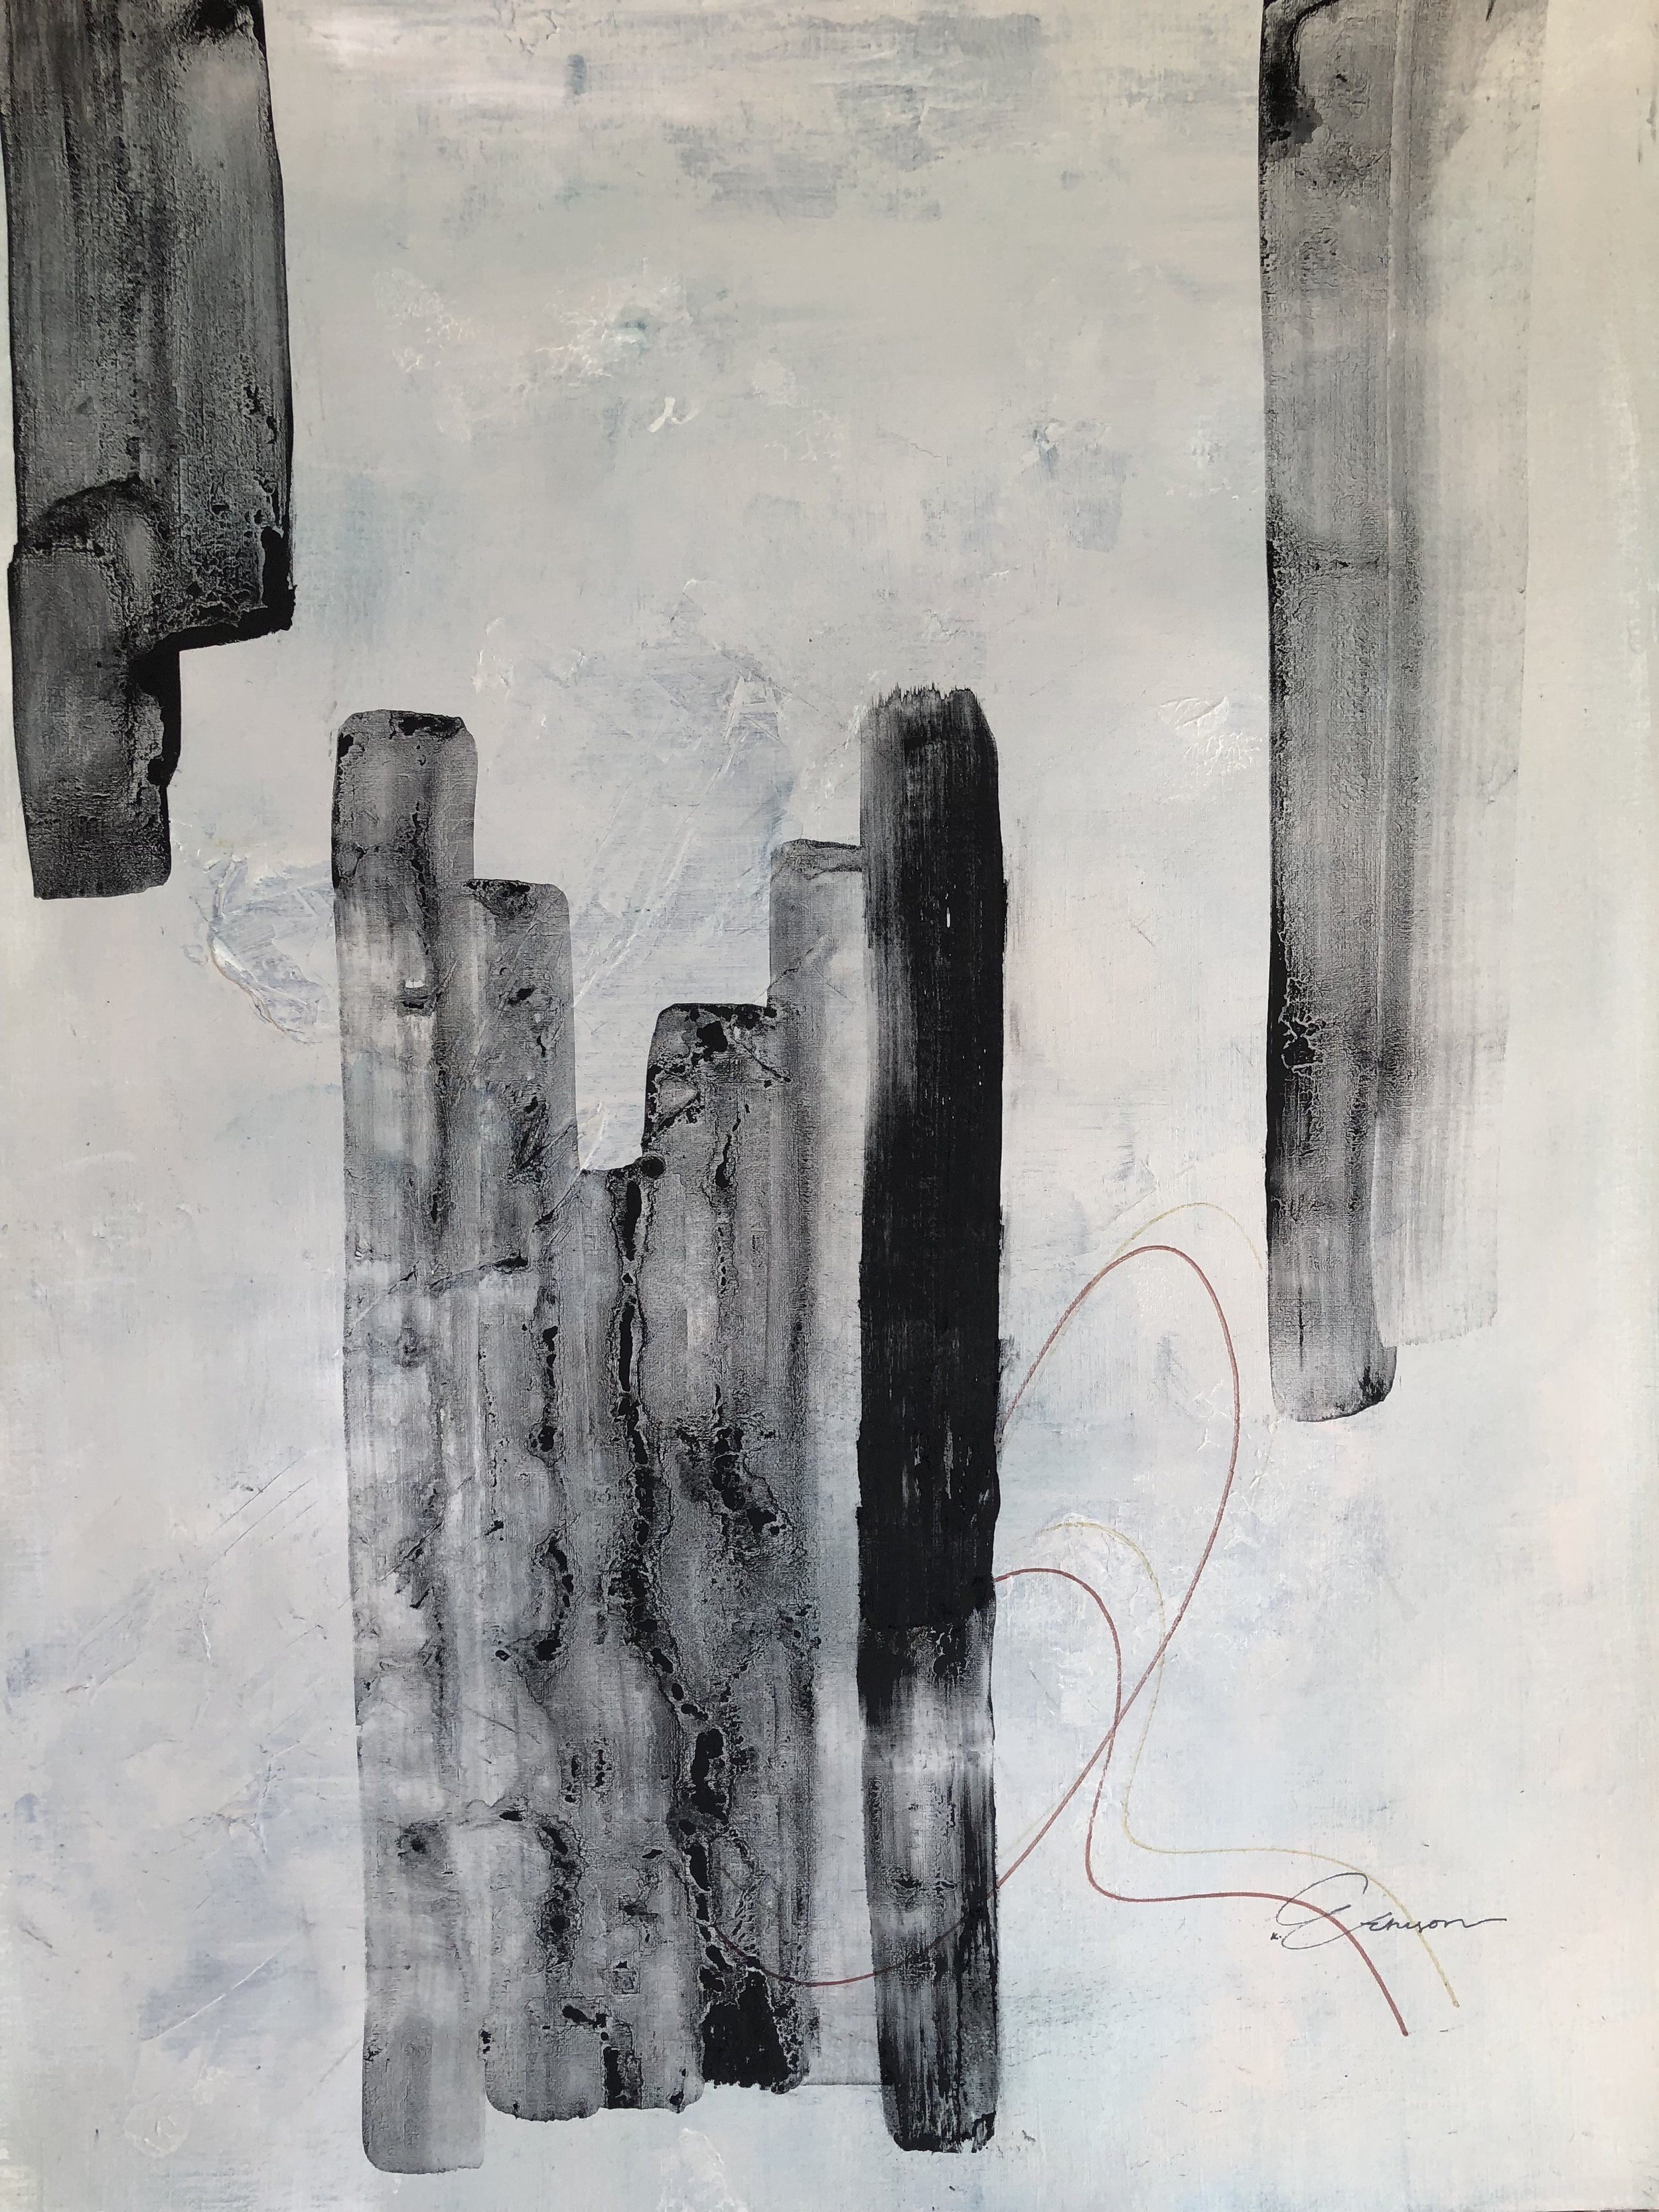 SOLD - REMODELING IVMIXED MEDIA ON PAPER 18 X 24